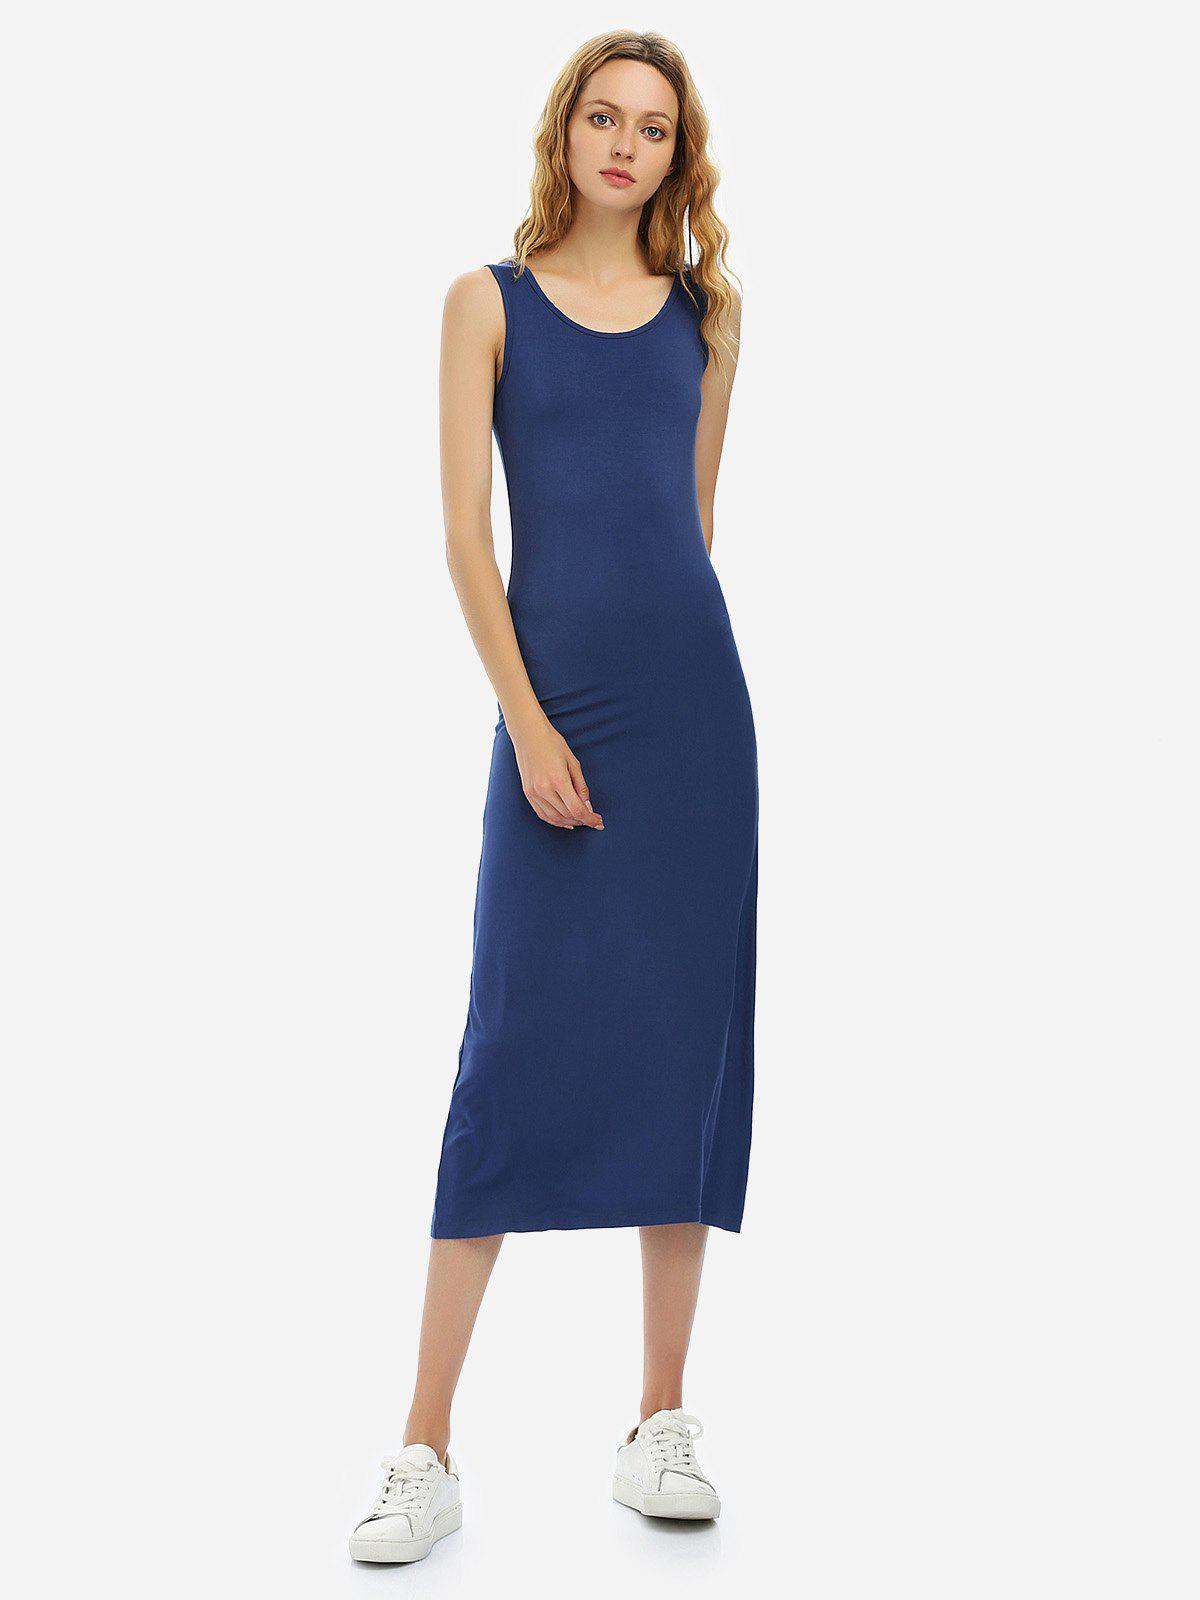 Store Crew Neck Sleeveless Dress